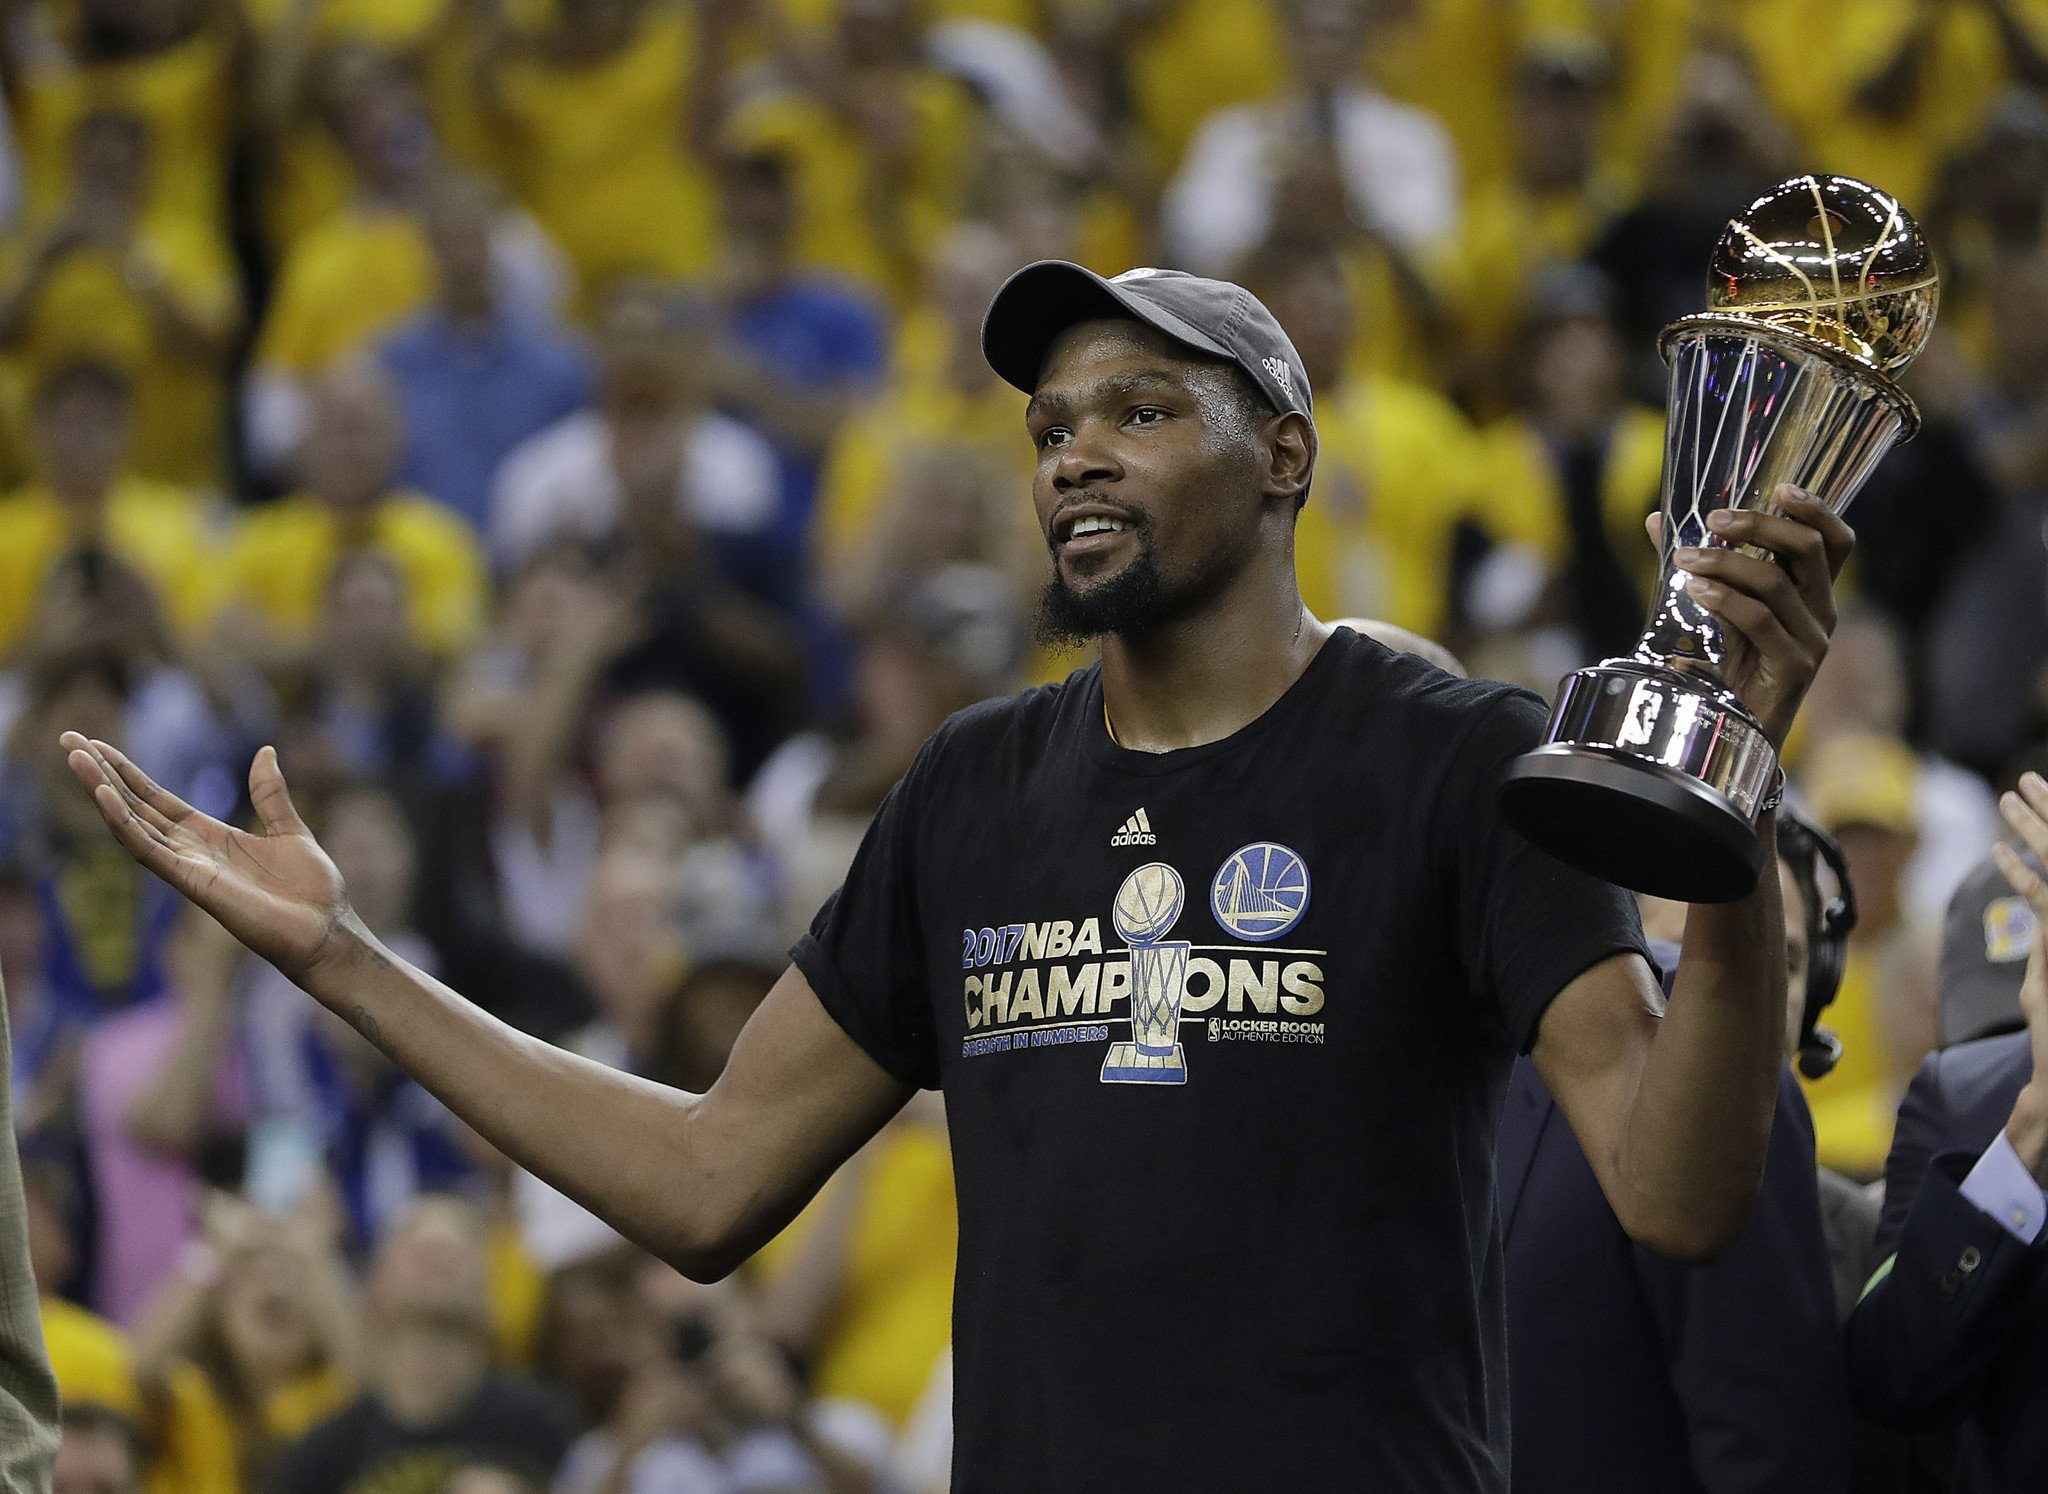 """Golden State Warriors forward Kevin Durant called Fox News Host Laura Ingraham a racist, for telling NBA star LeBron James to """"shut up and dribble."""" """"It's just sad to see people who think that way. It's weird. It's not even a place where we should be as humans,""""Durant saidaccording to USA Today. """"To me, it …"""